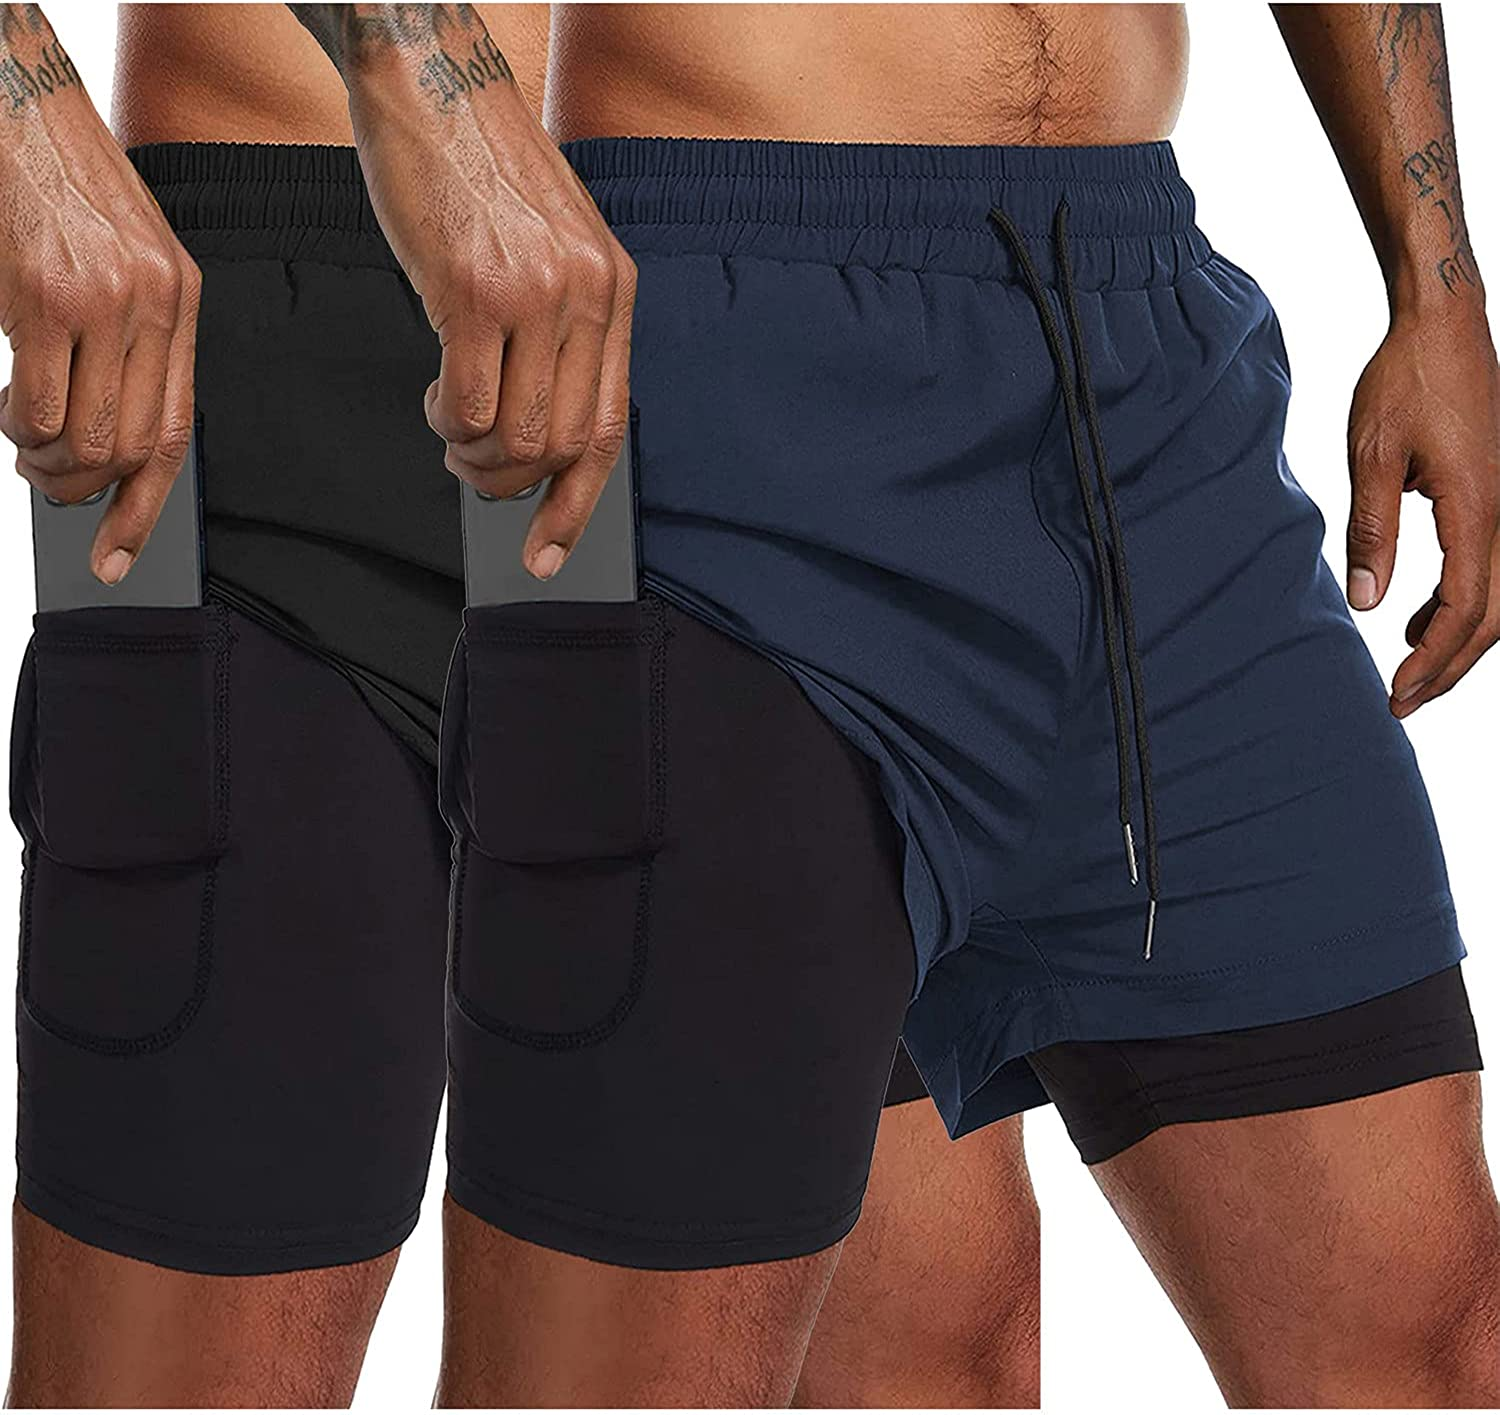 COOFANDY Men's Max 43% OFF Workout Shorts Quick Dry 2 1 Bodybuilding Gym in Max 48% OFF